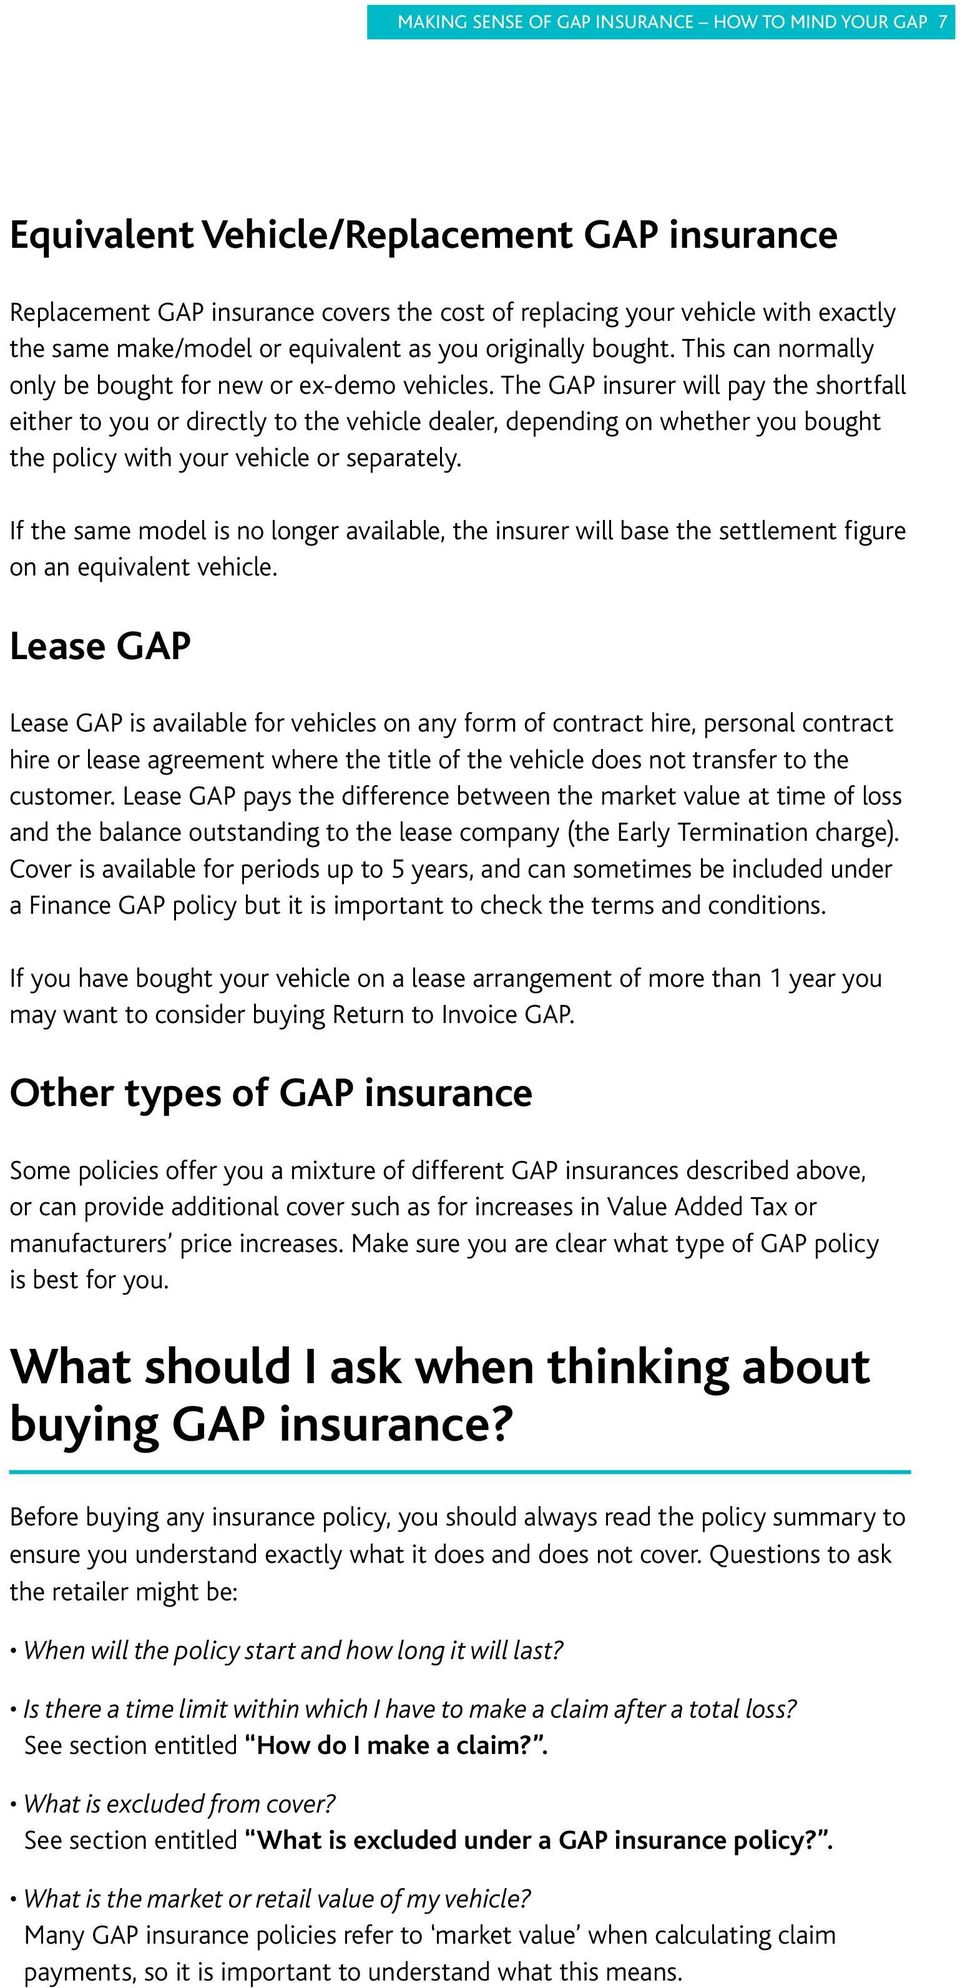 The GAP insurer will pay the shortfall either to you or directly to the vehicle dealer, depending on whether you bought the policy with your vehicle or separately.